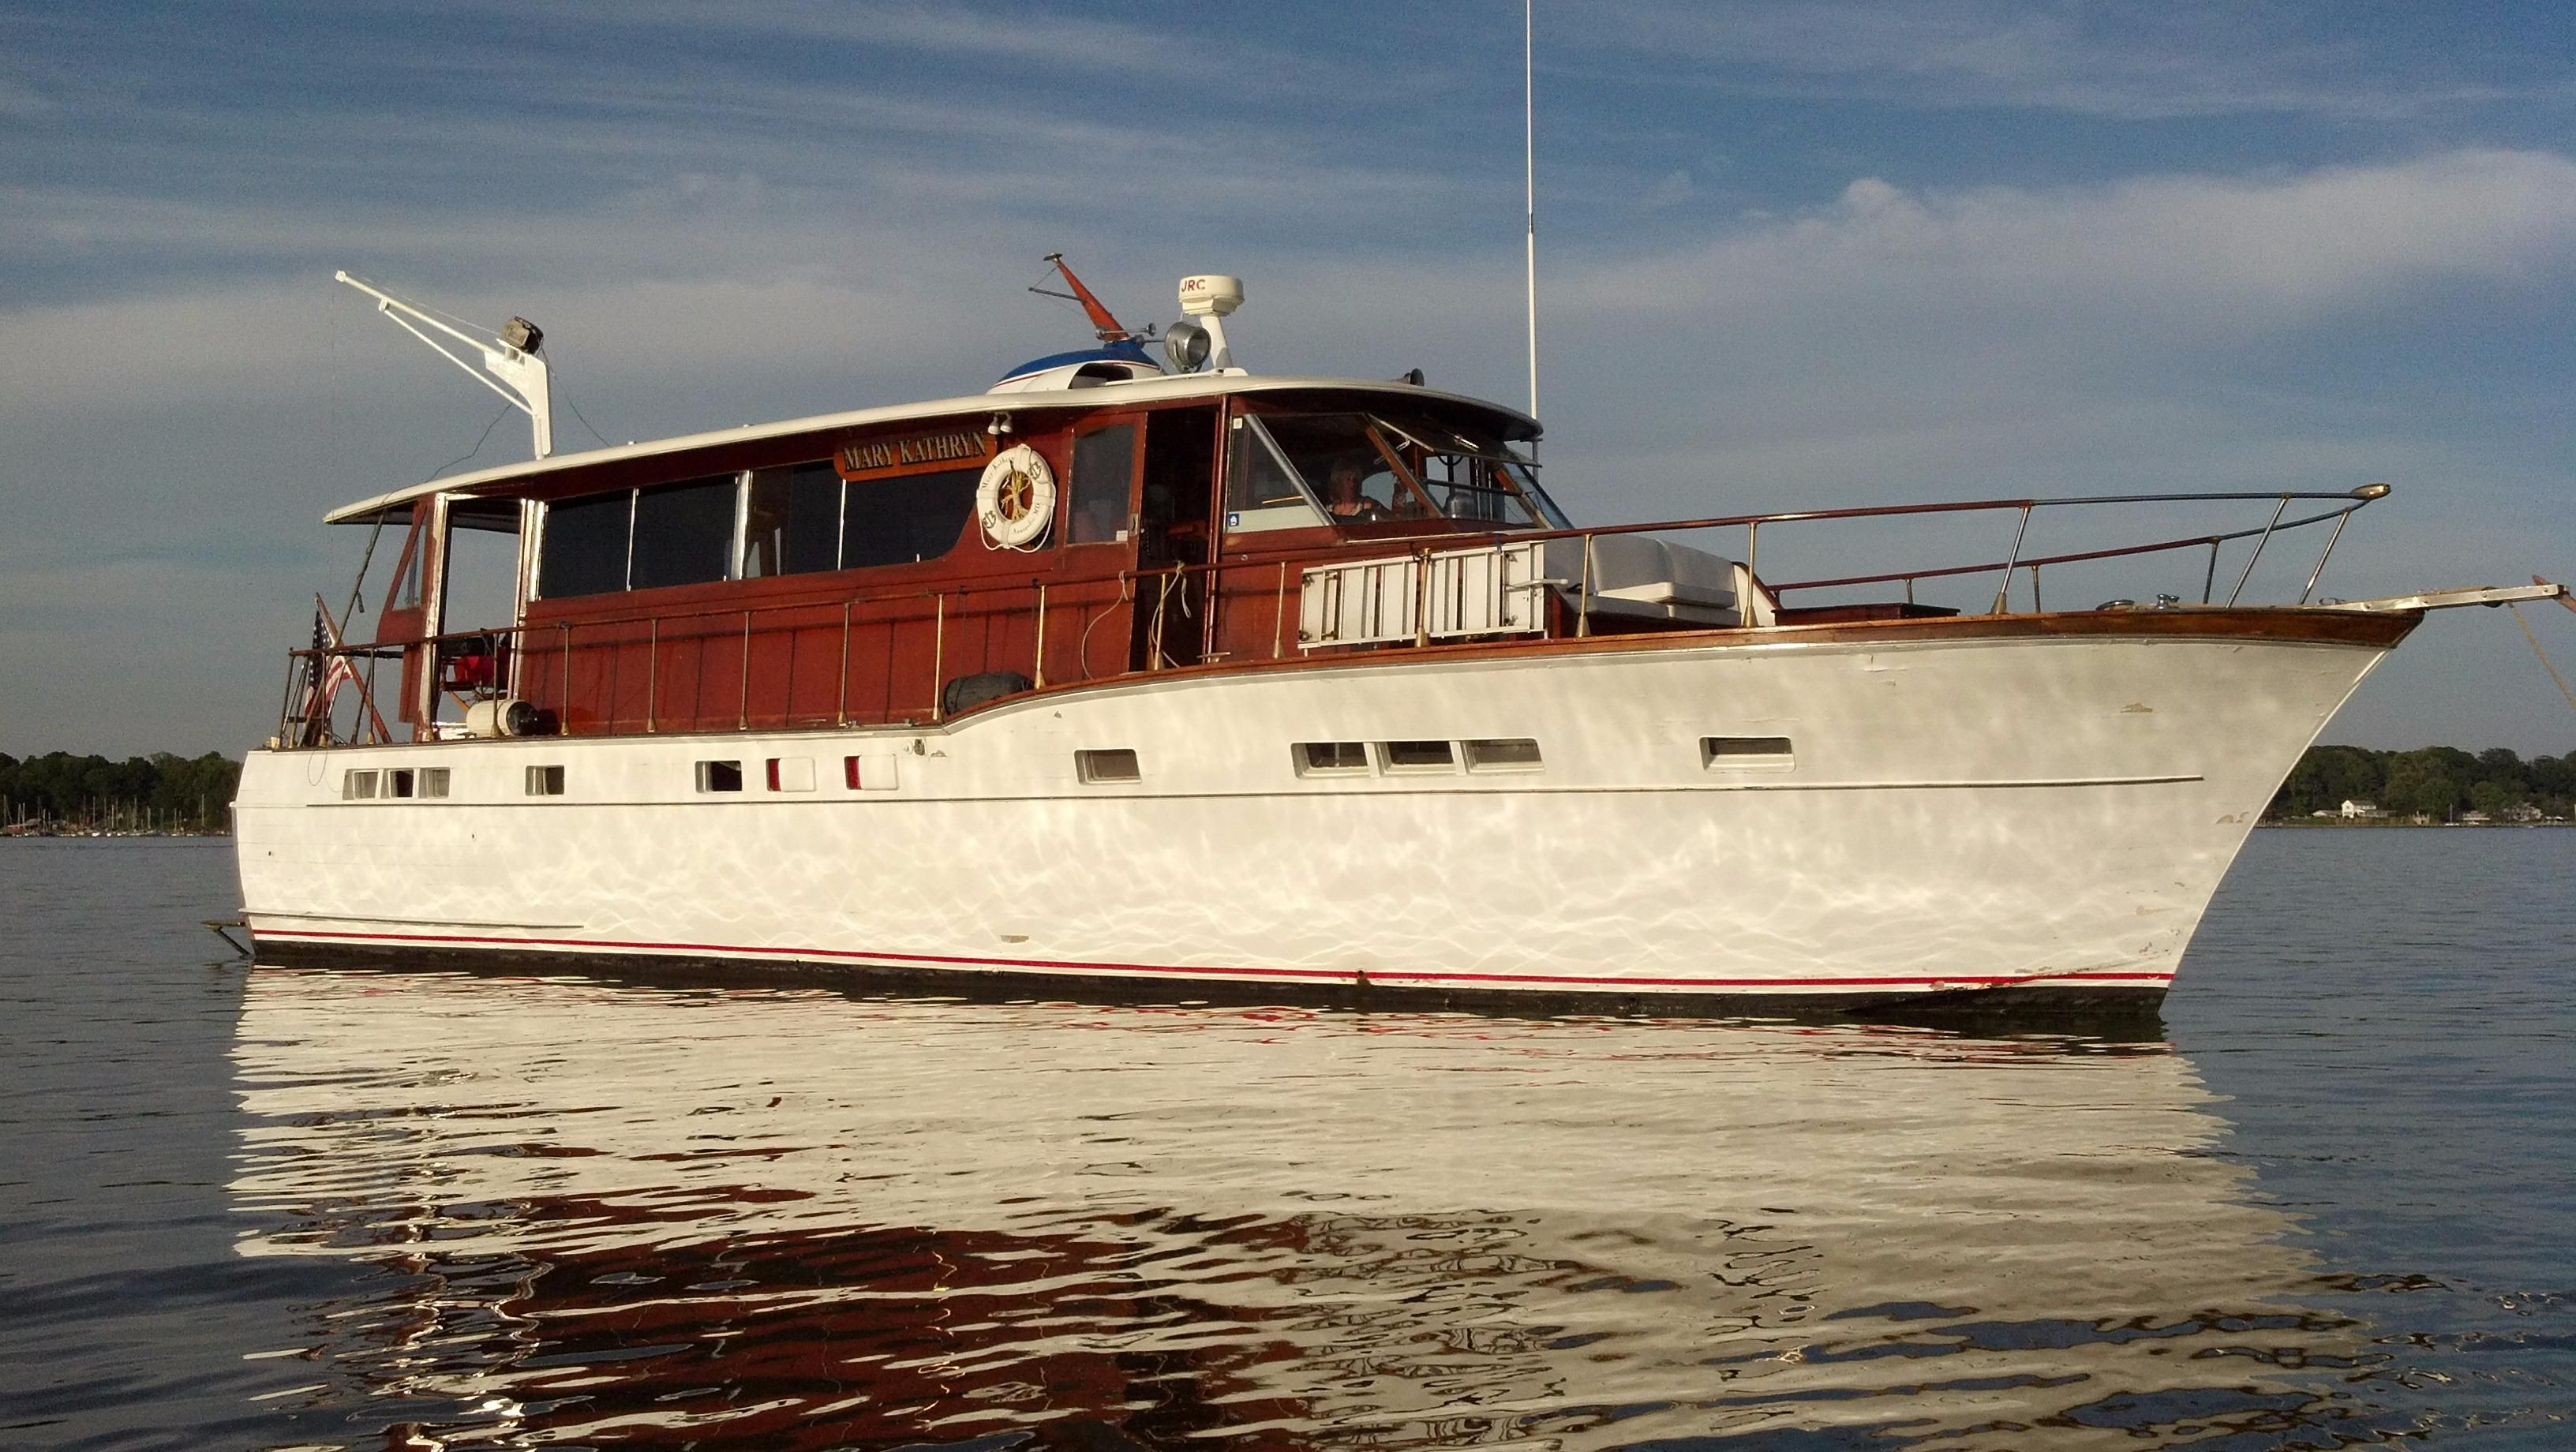 For Sale With Images Chris Craft Boats Motor Yacht Yacht Boat